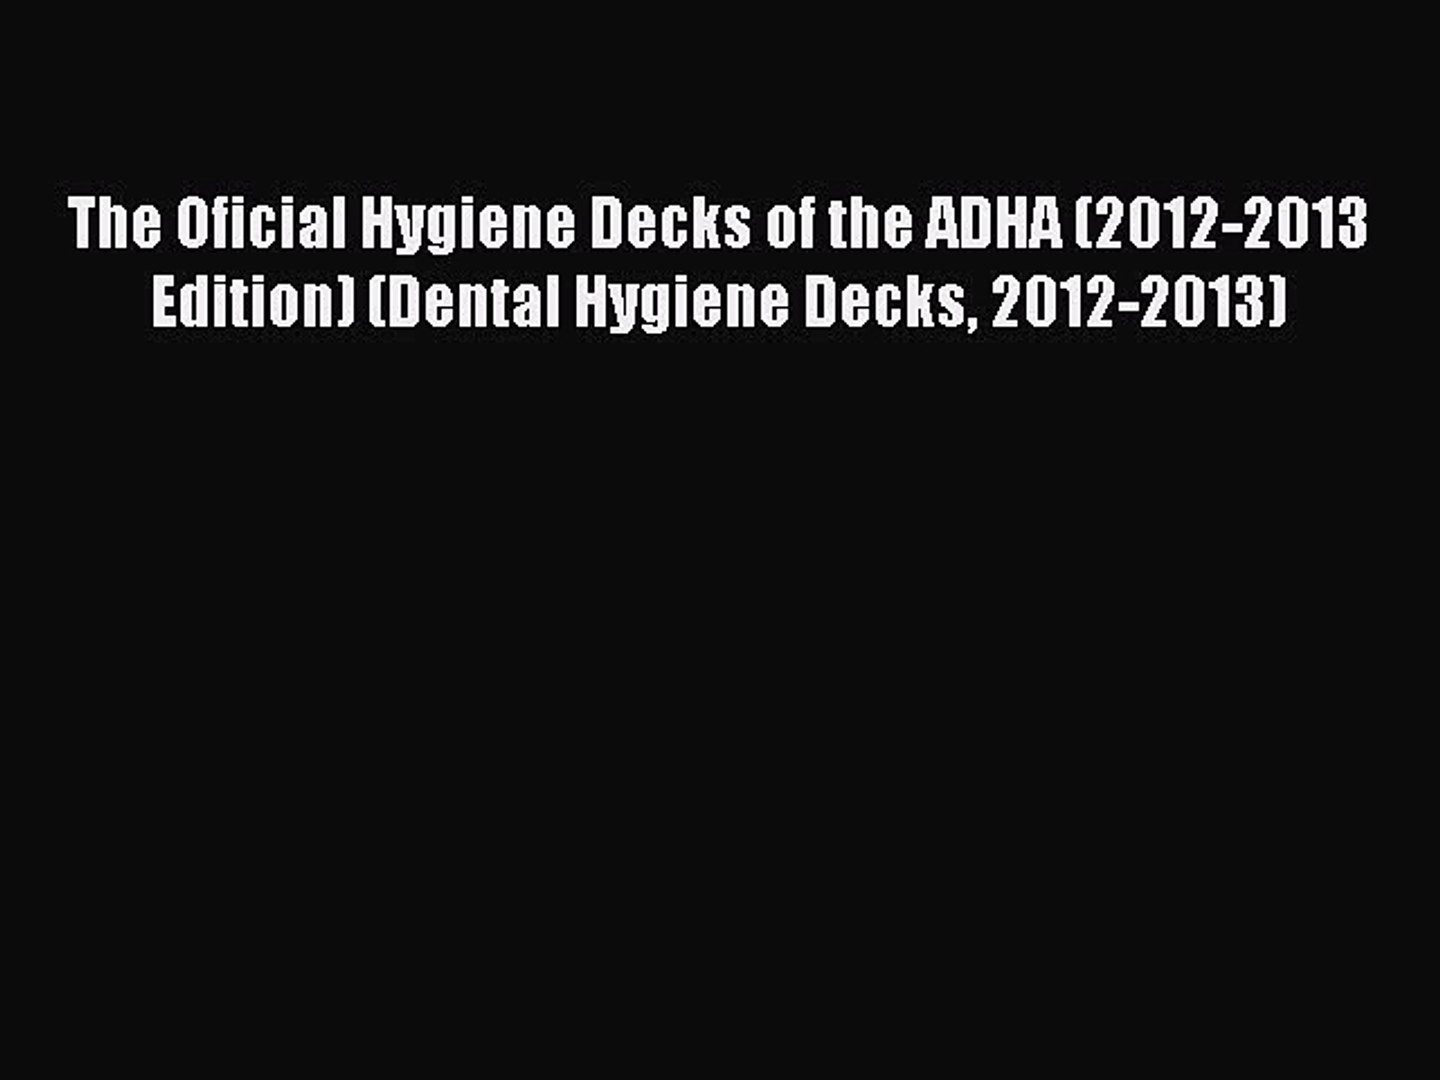 [PDF] The Oficial Hygiene Decks of the ADHA (2012-2013 Edition) (Dental Hygiene Decks 2012-2013)